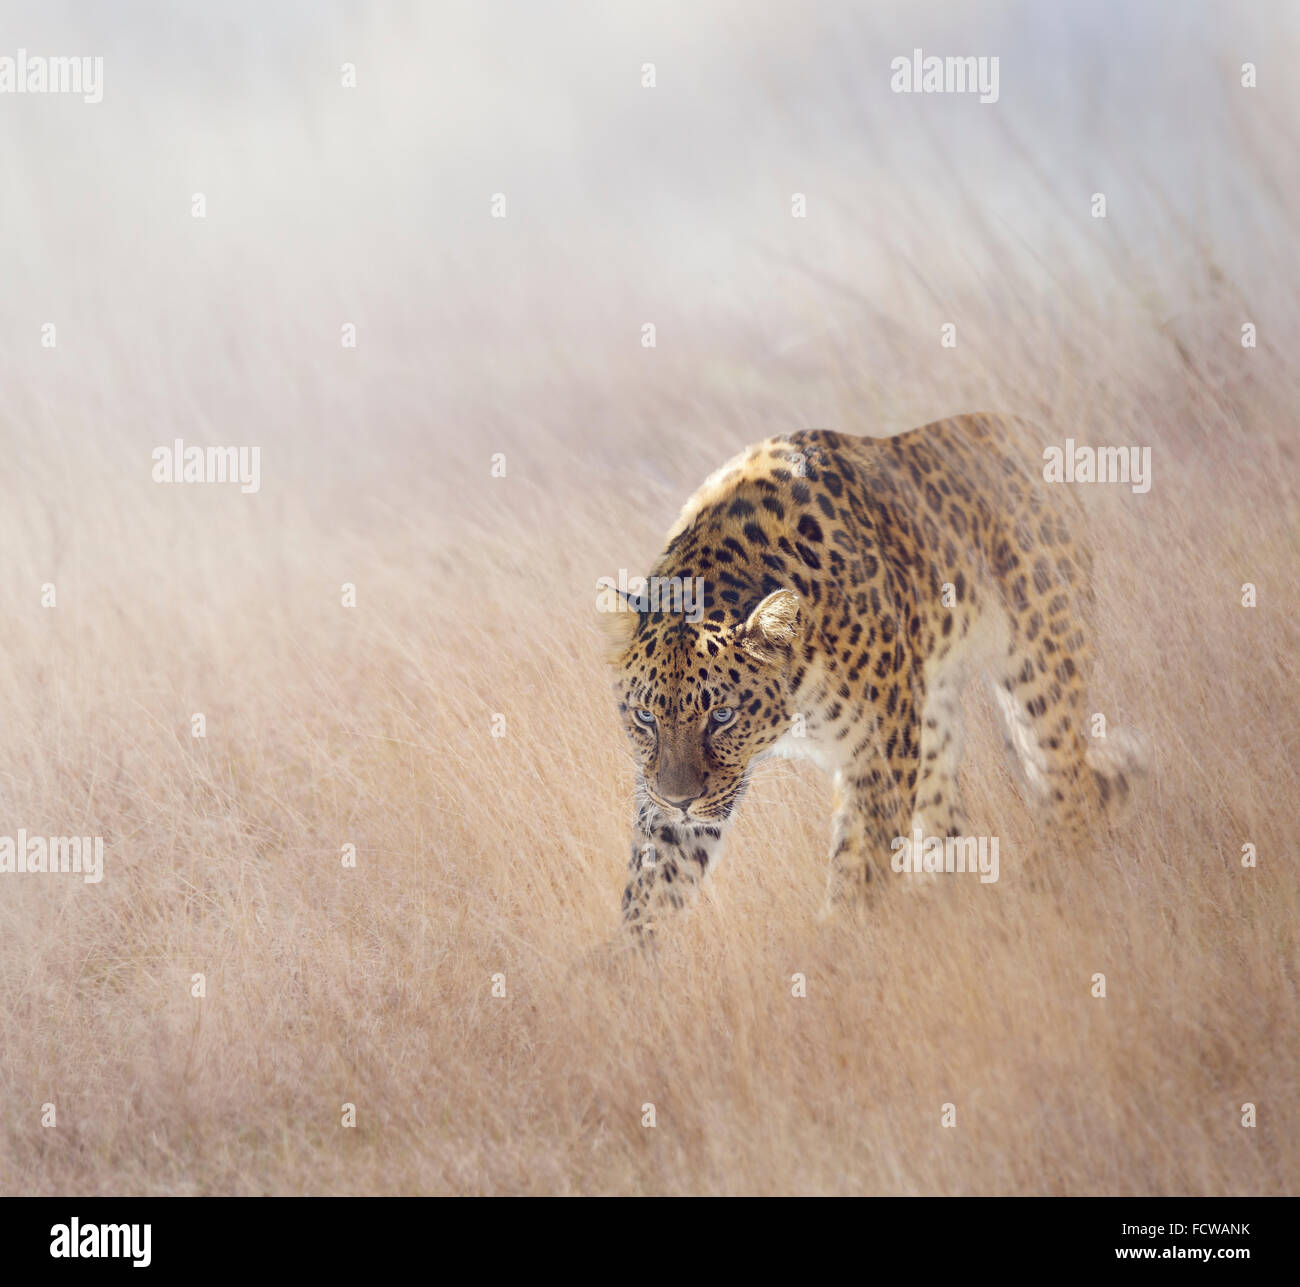 Leopard Walking in The Grass - Stock Image